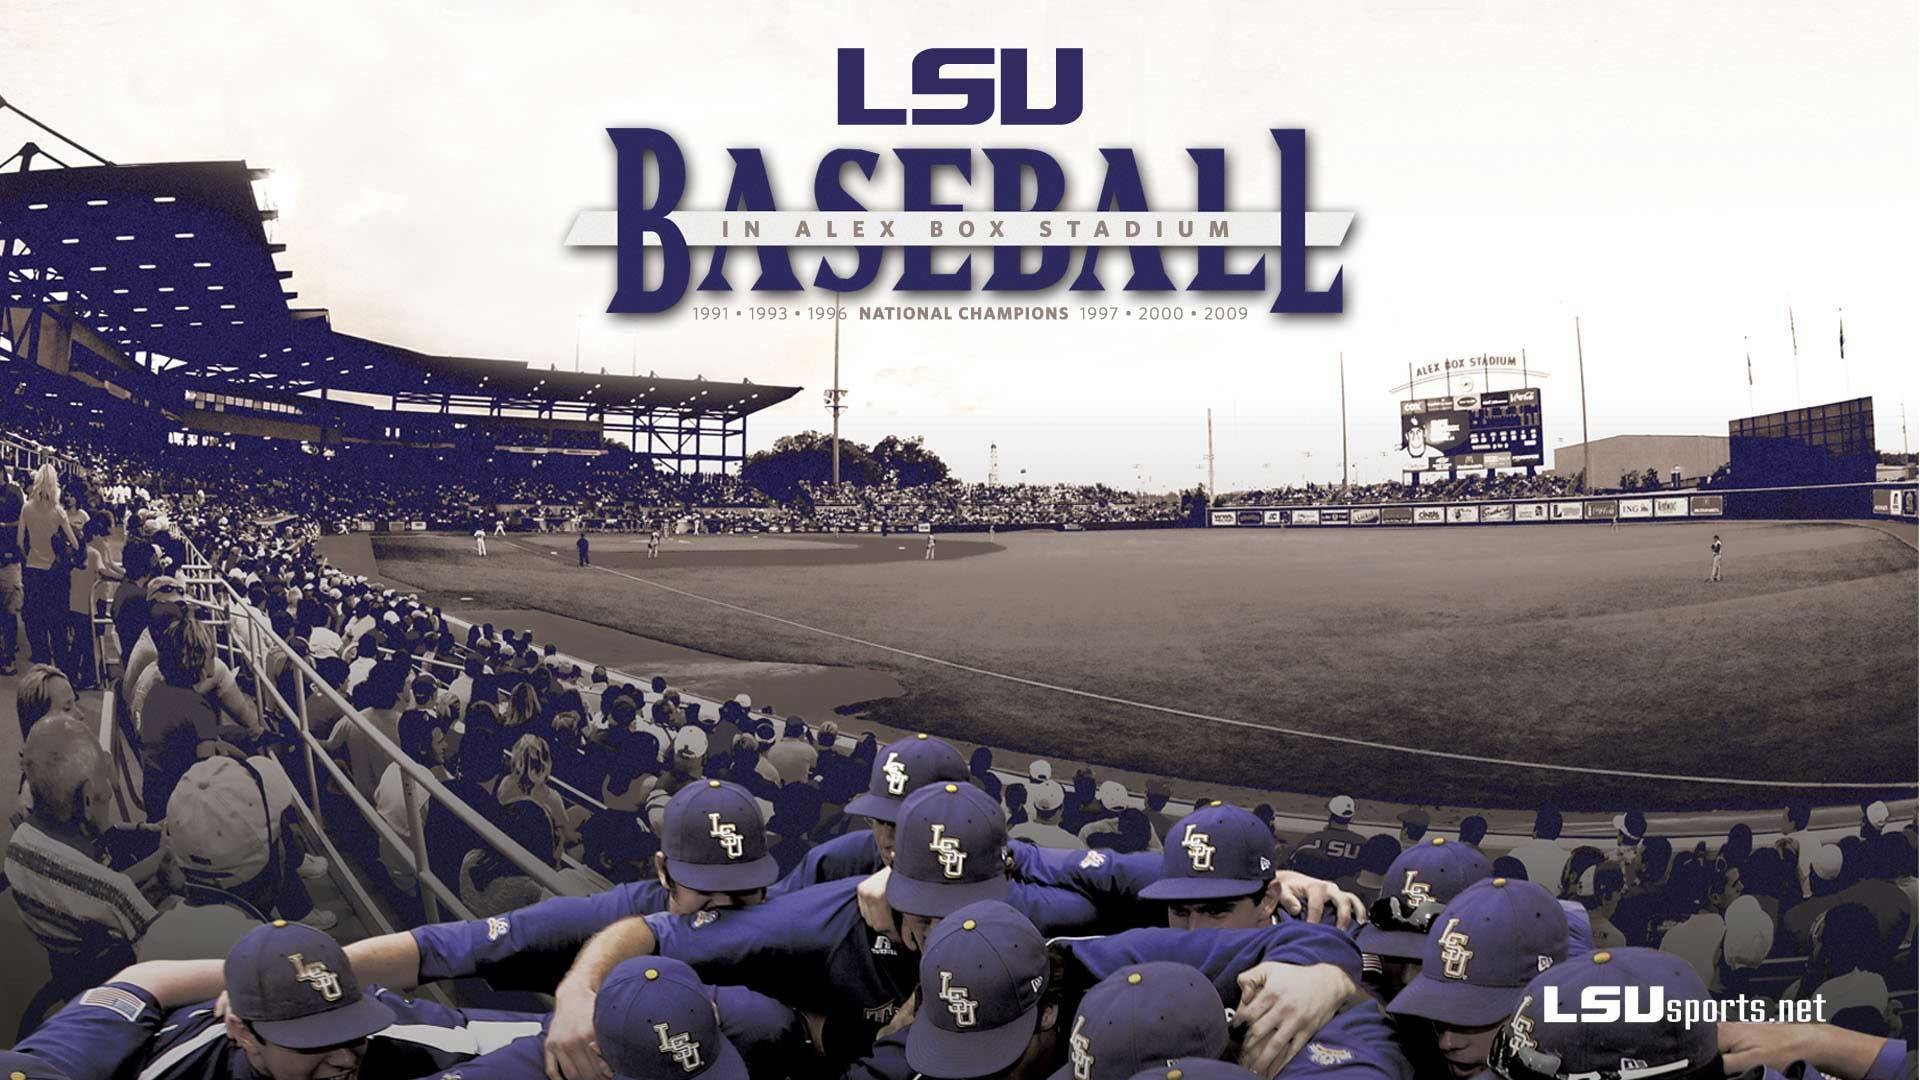 1920x1080 HD LSU Baseball 4k Picture for Desktop